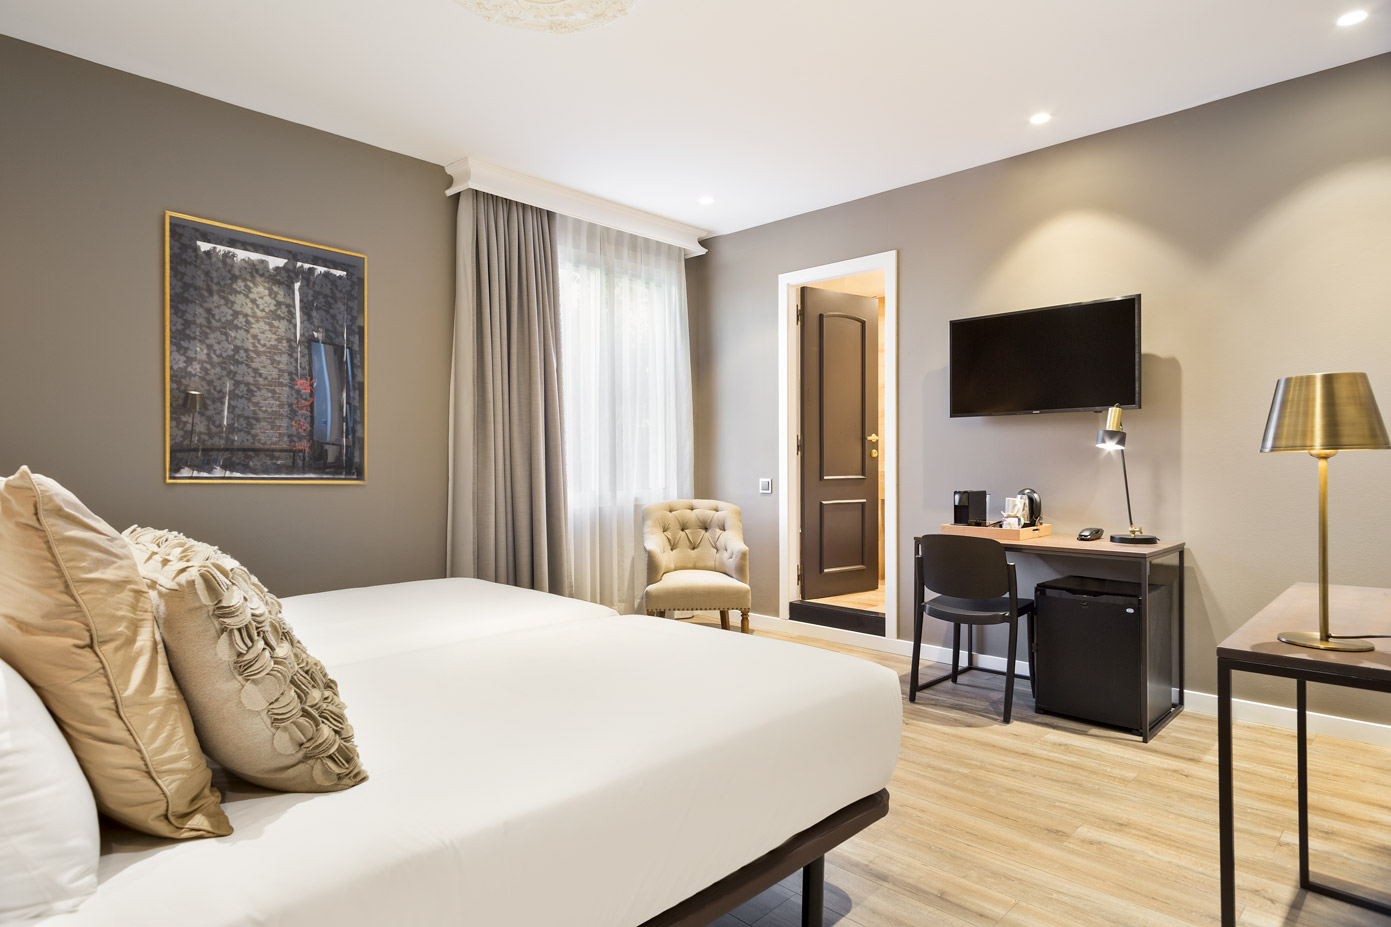 HOTEL_ACTA_SPLENDID_DOBLE_TWIN_SUPERIOR_04